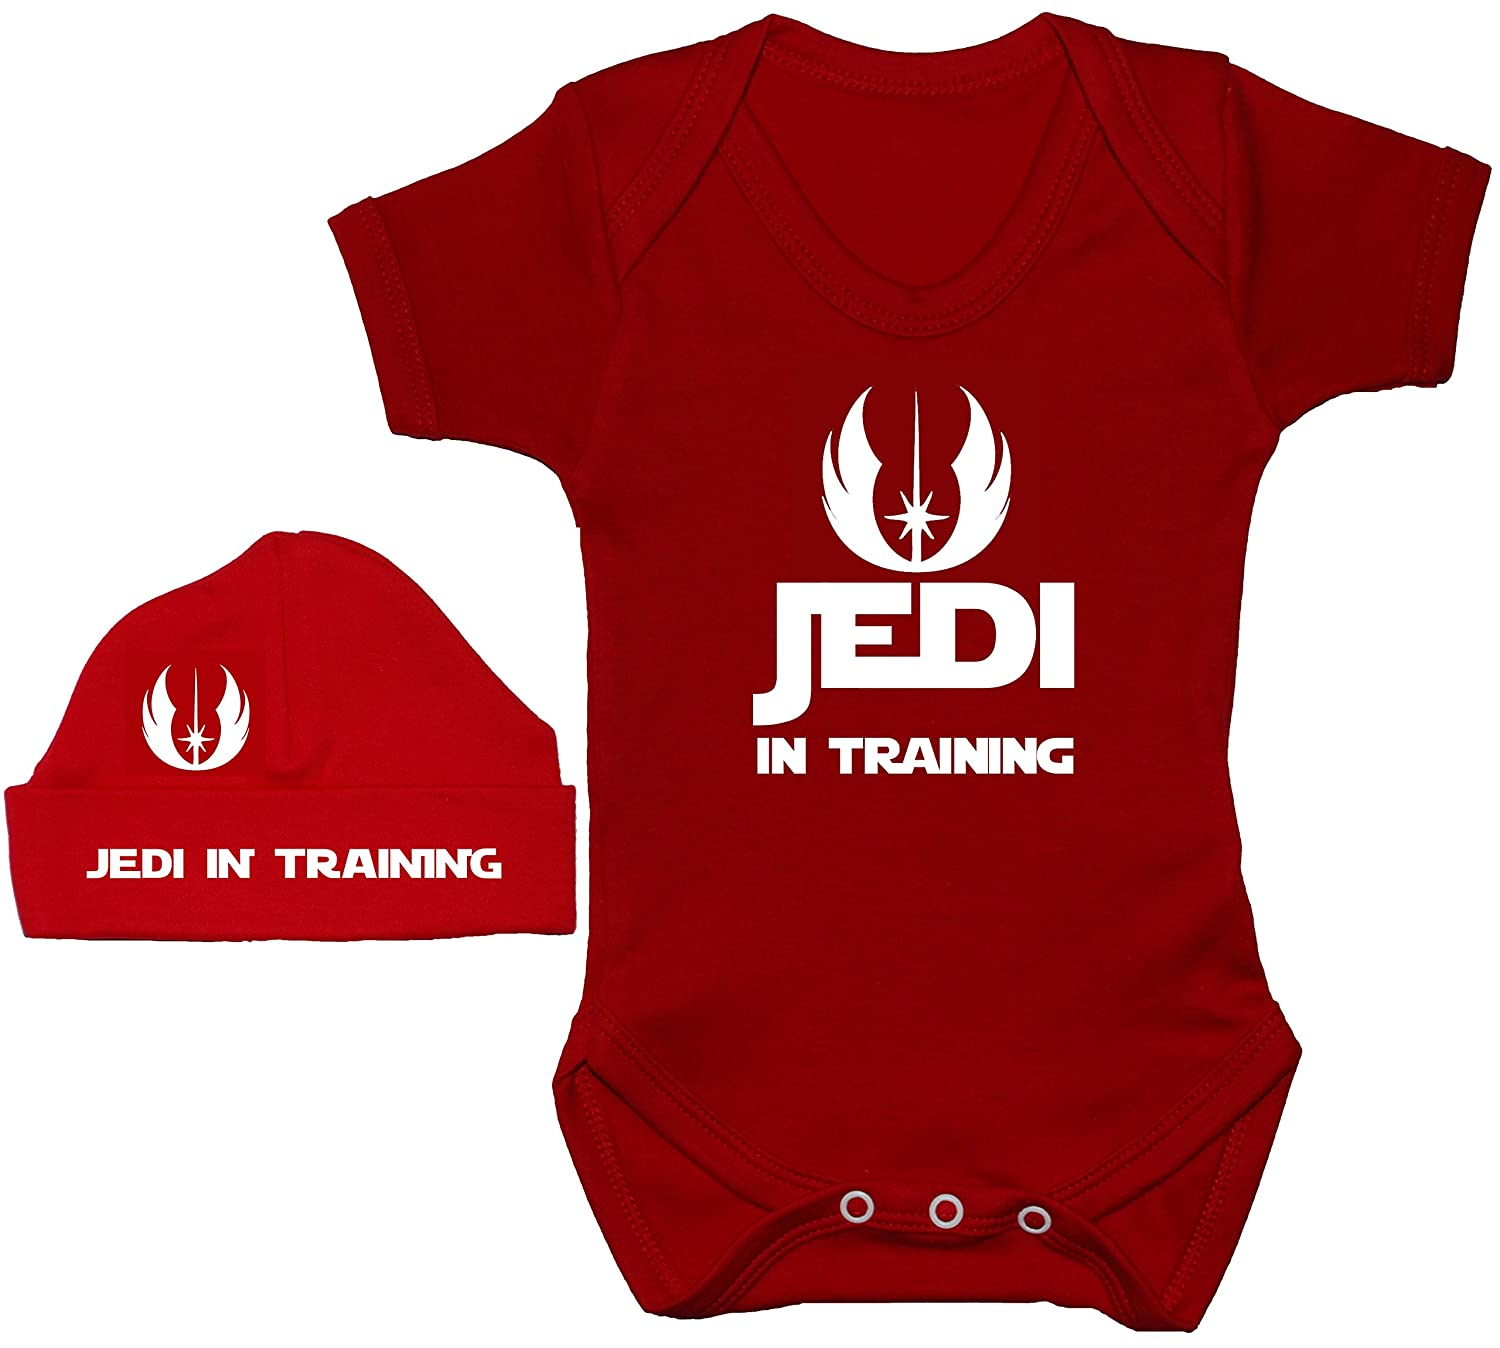 Acce Products Jedi in Training Baby Grow/Bodysuit/Romper/T-Shirt & Beanie Hat/Cap 0 to 12 Months